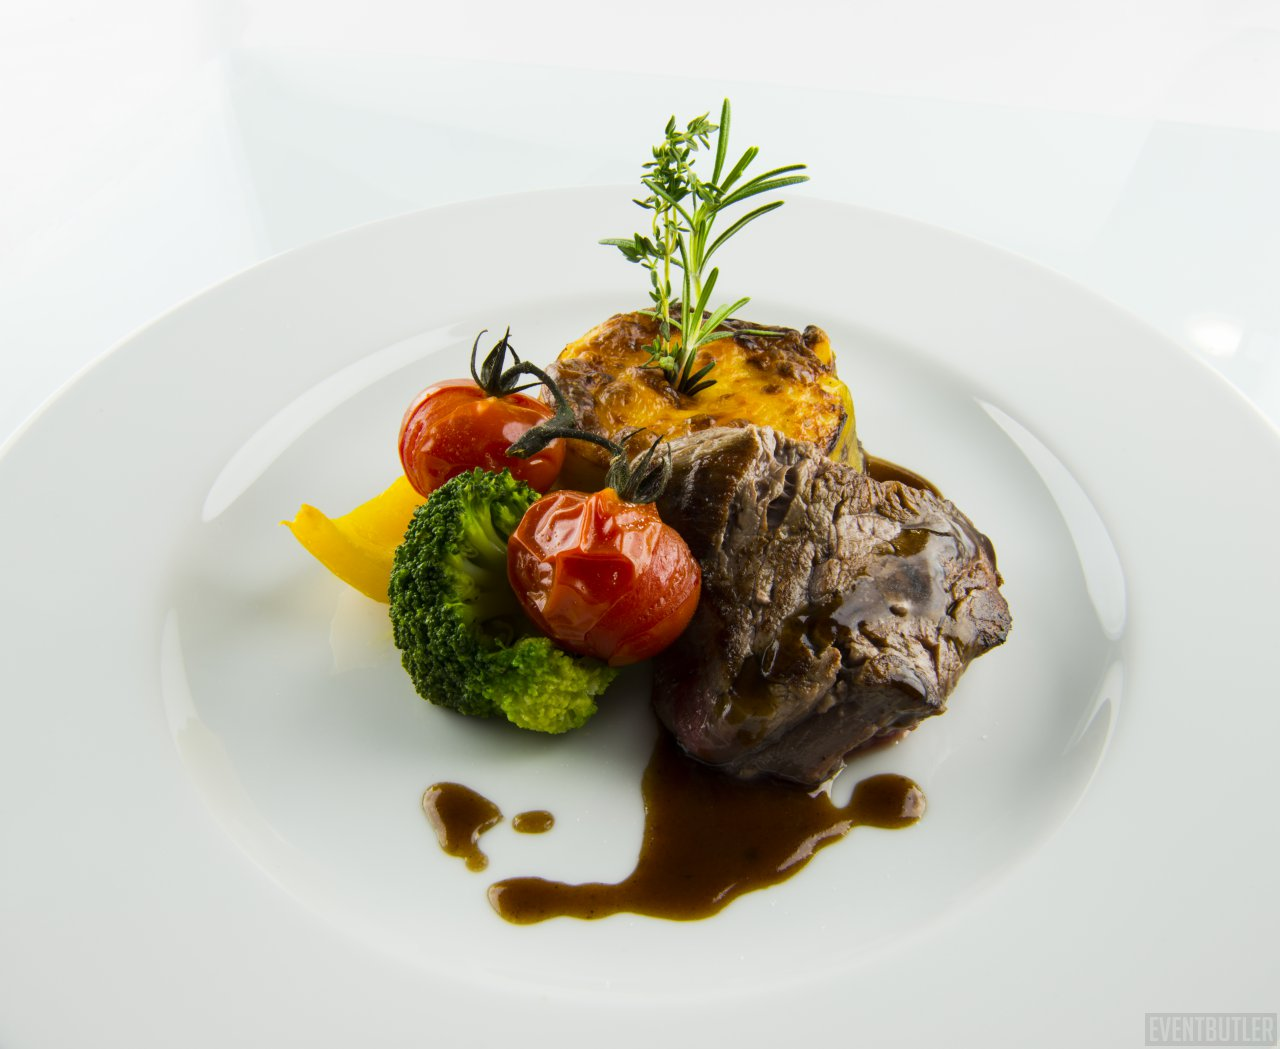 mein Catering - Catering & Lieferservice in Uster